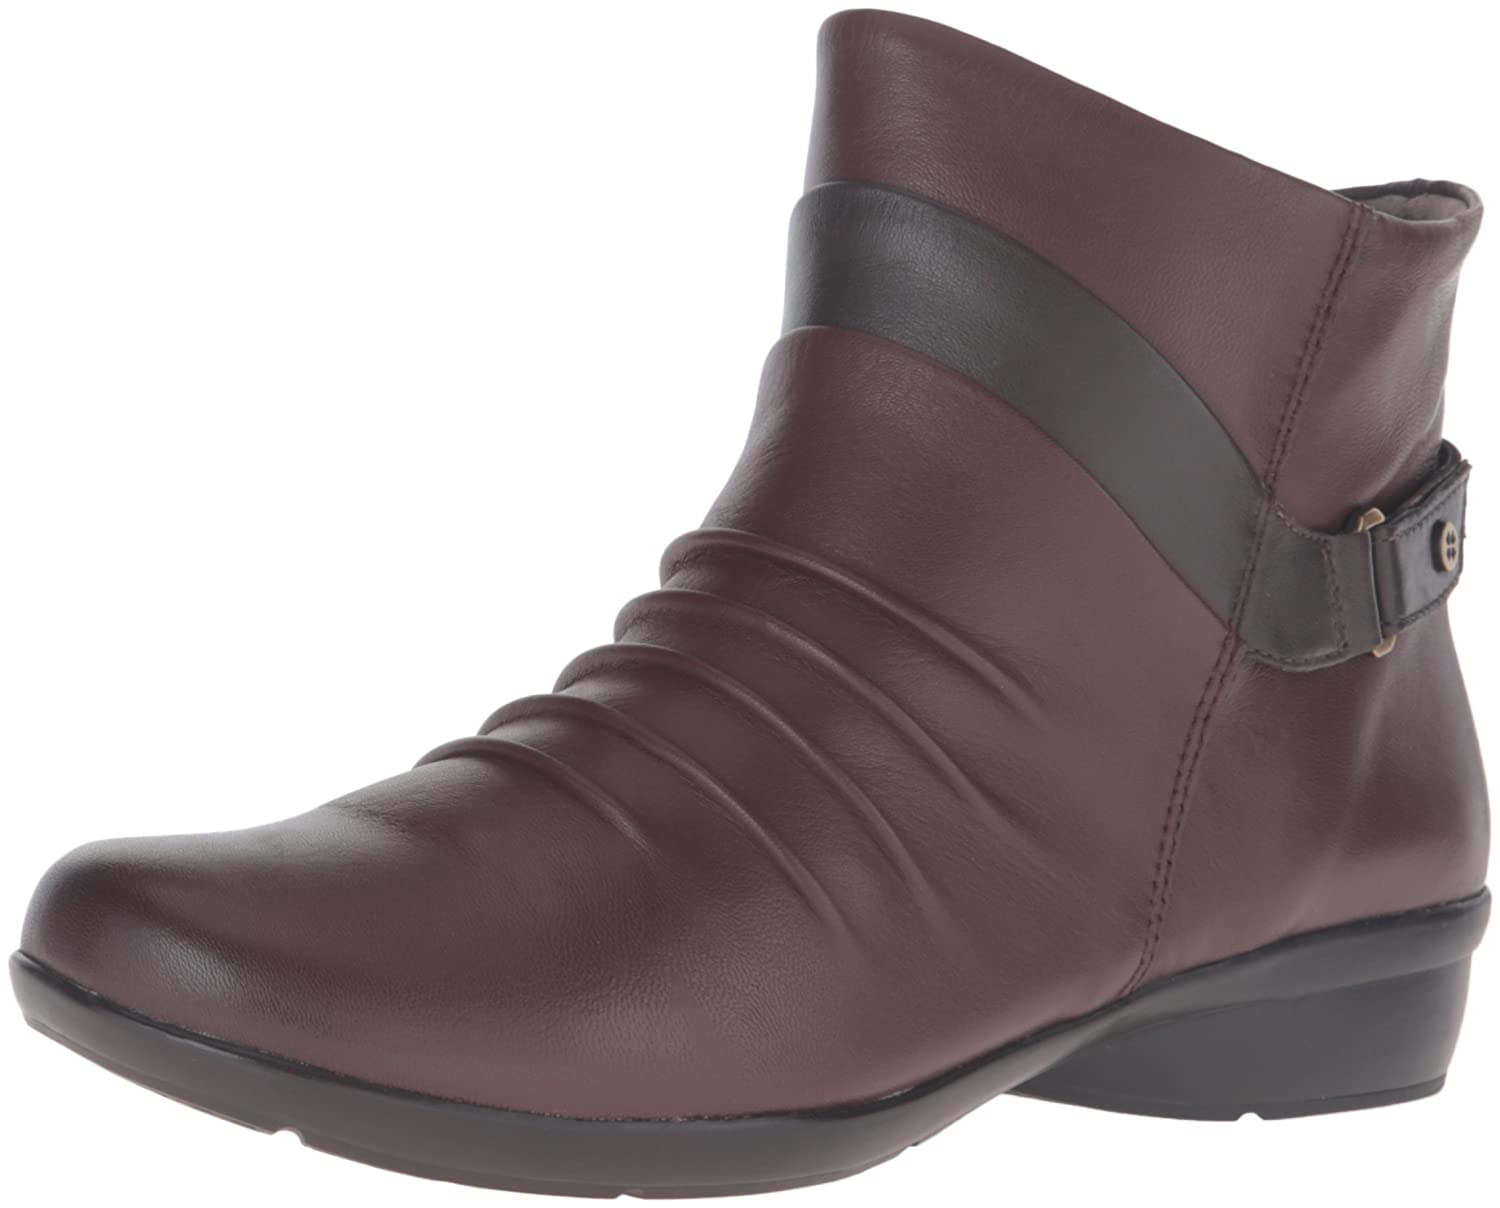 Naturalizer Women's Caldo Boot B019XHCYF4 6 B(M) US|Brown